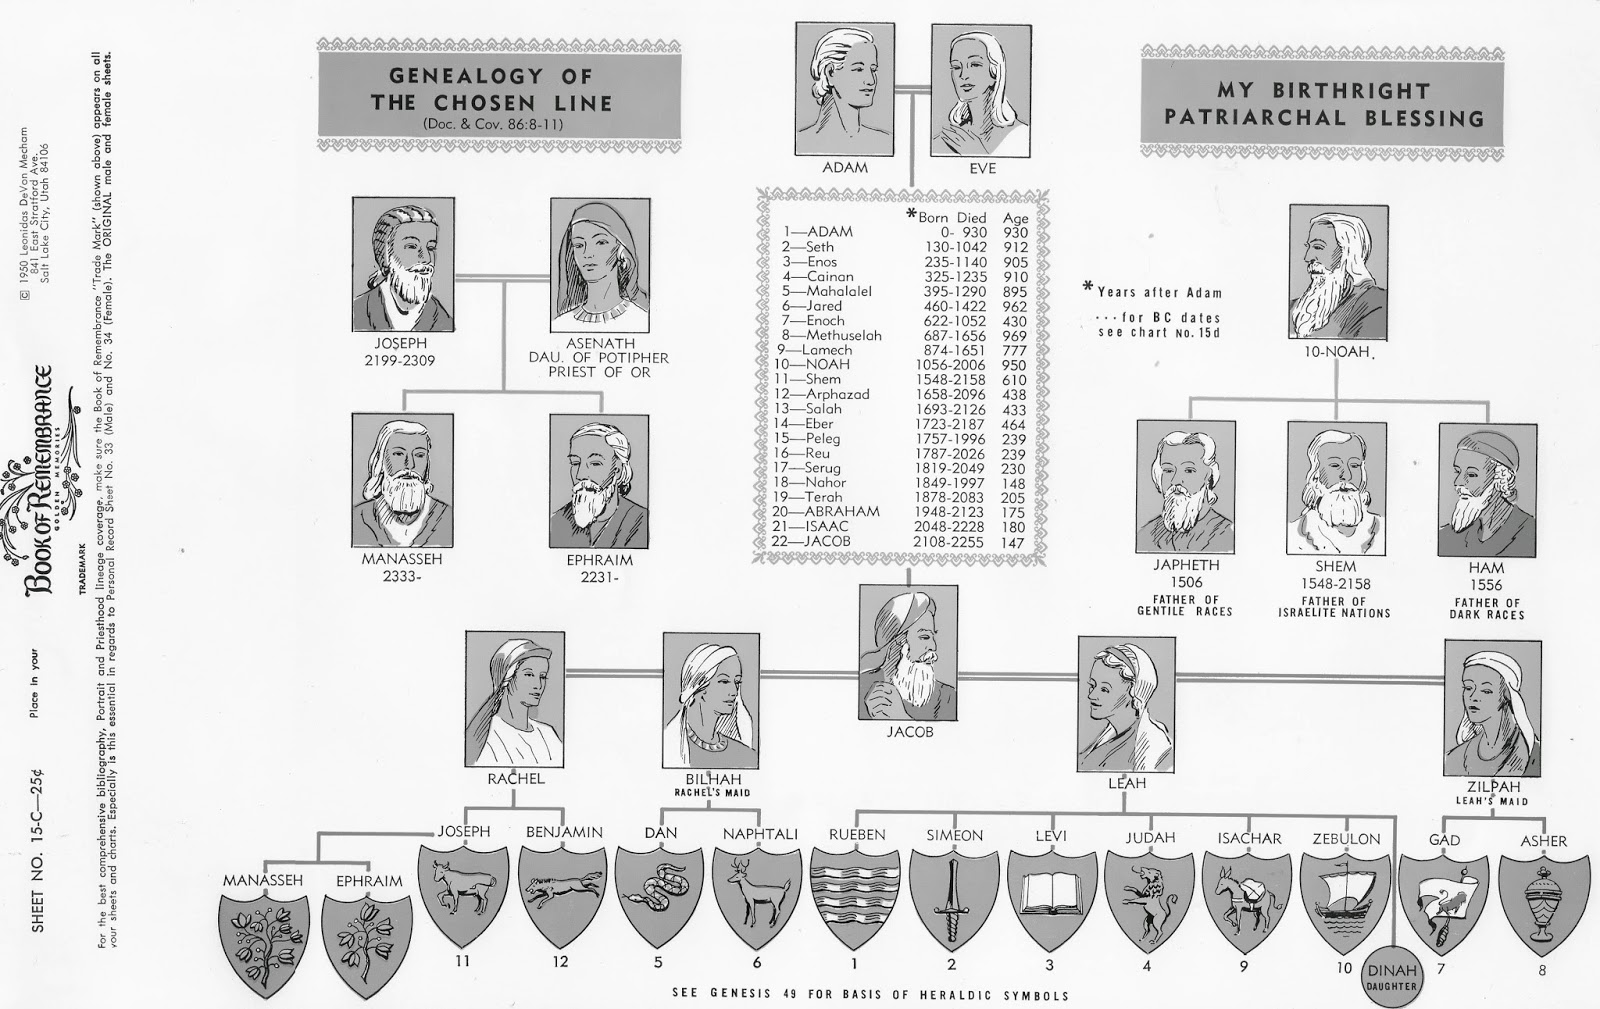 pedigree chart showing the descendancy of adam and eve to twelve tribes israel also saints witches murderers rh johnsonfamilyhistorystoriesspot